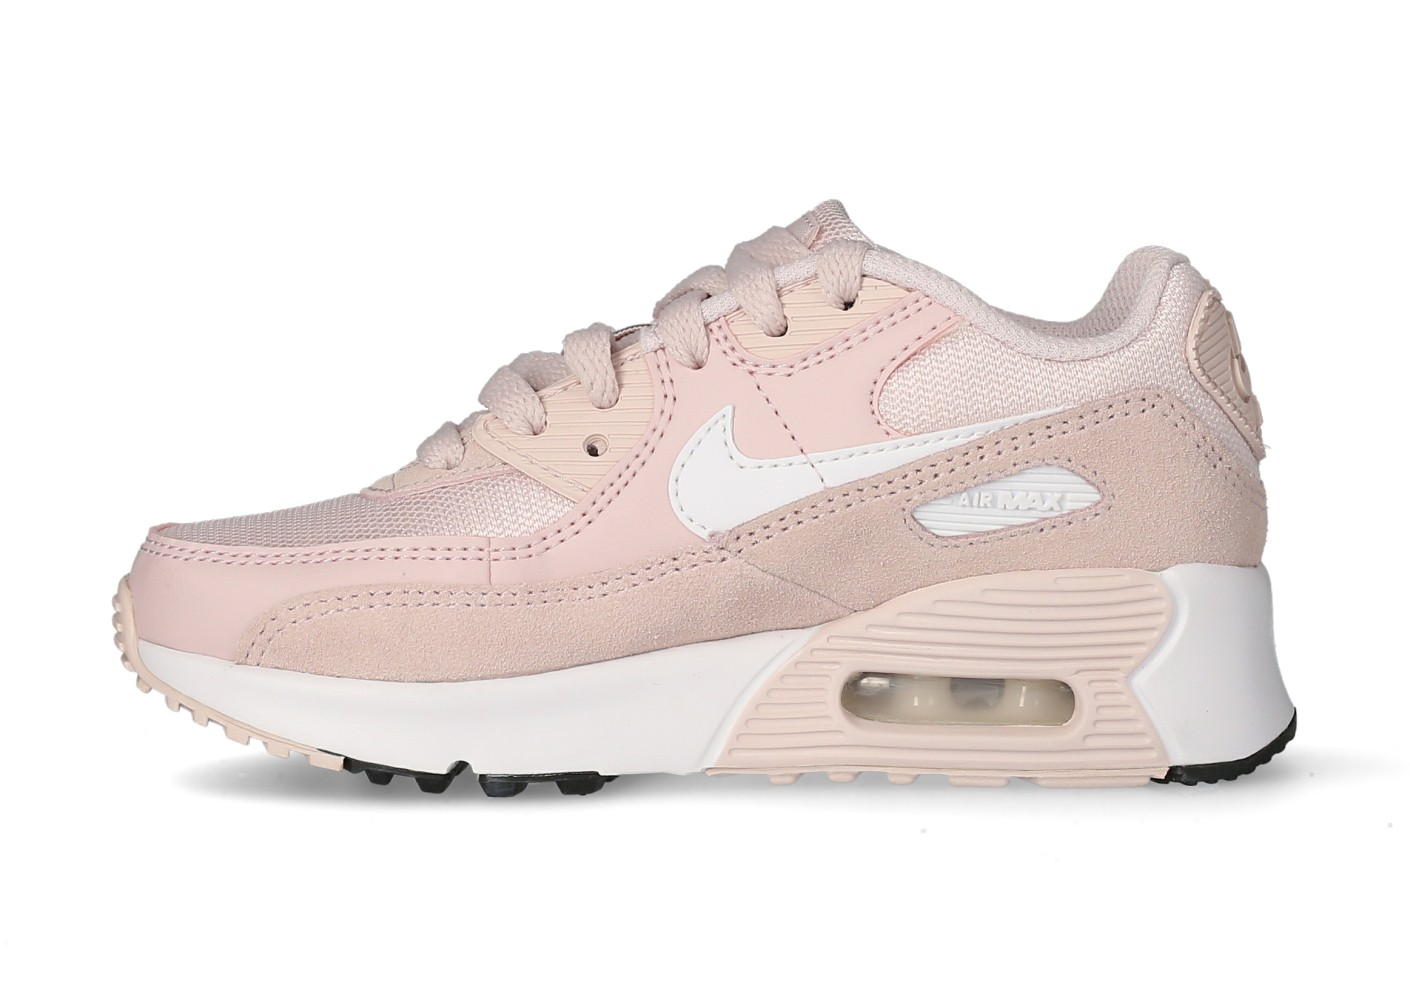 Nike Air max 90 leather enfant rose - Chaussures Prix stylés ...